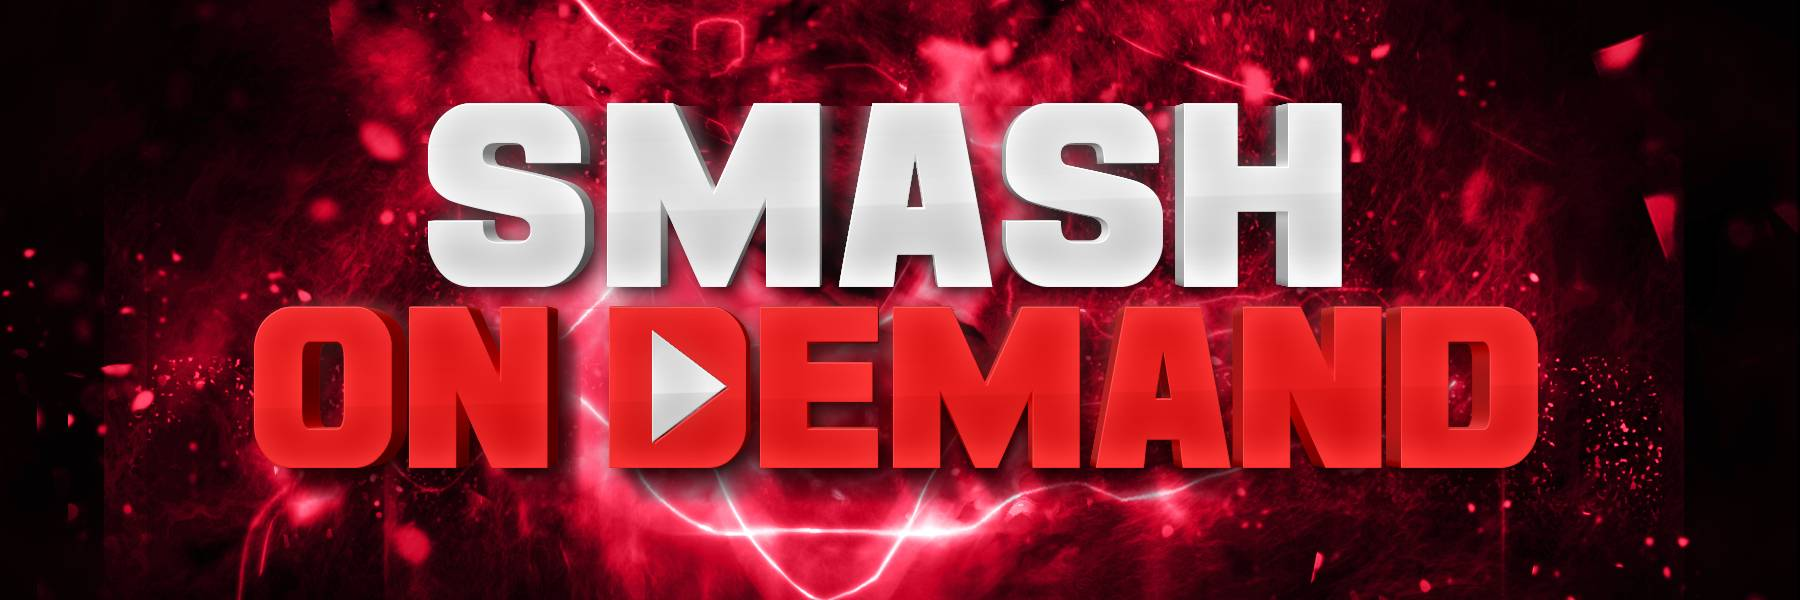 Smash Wrestling On Demand - Everything. Ever. $7.49